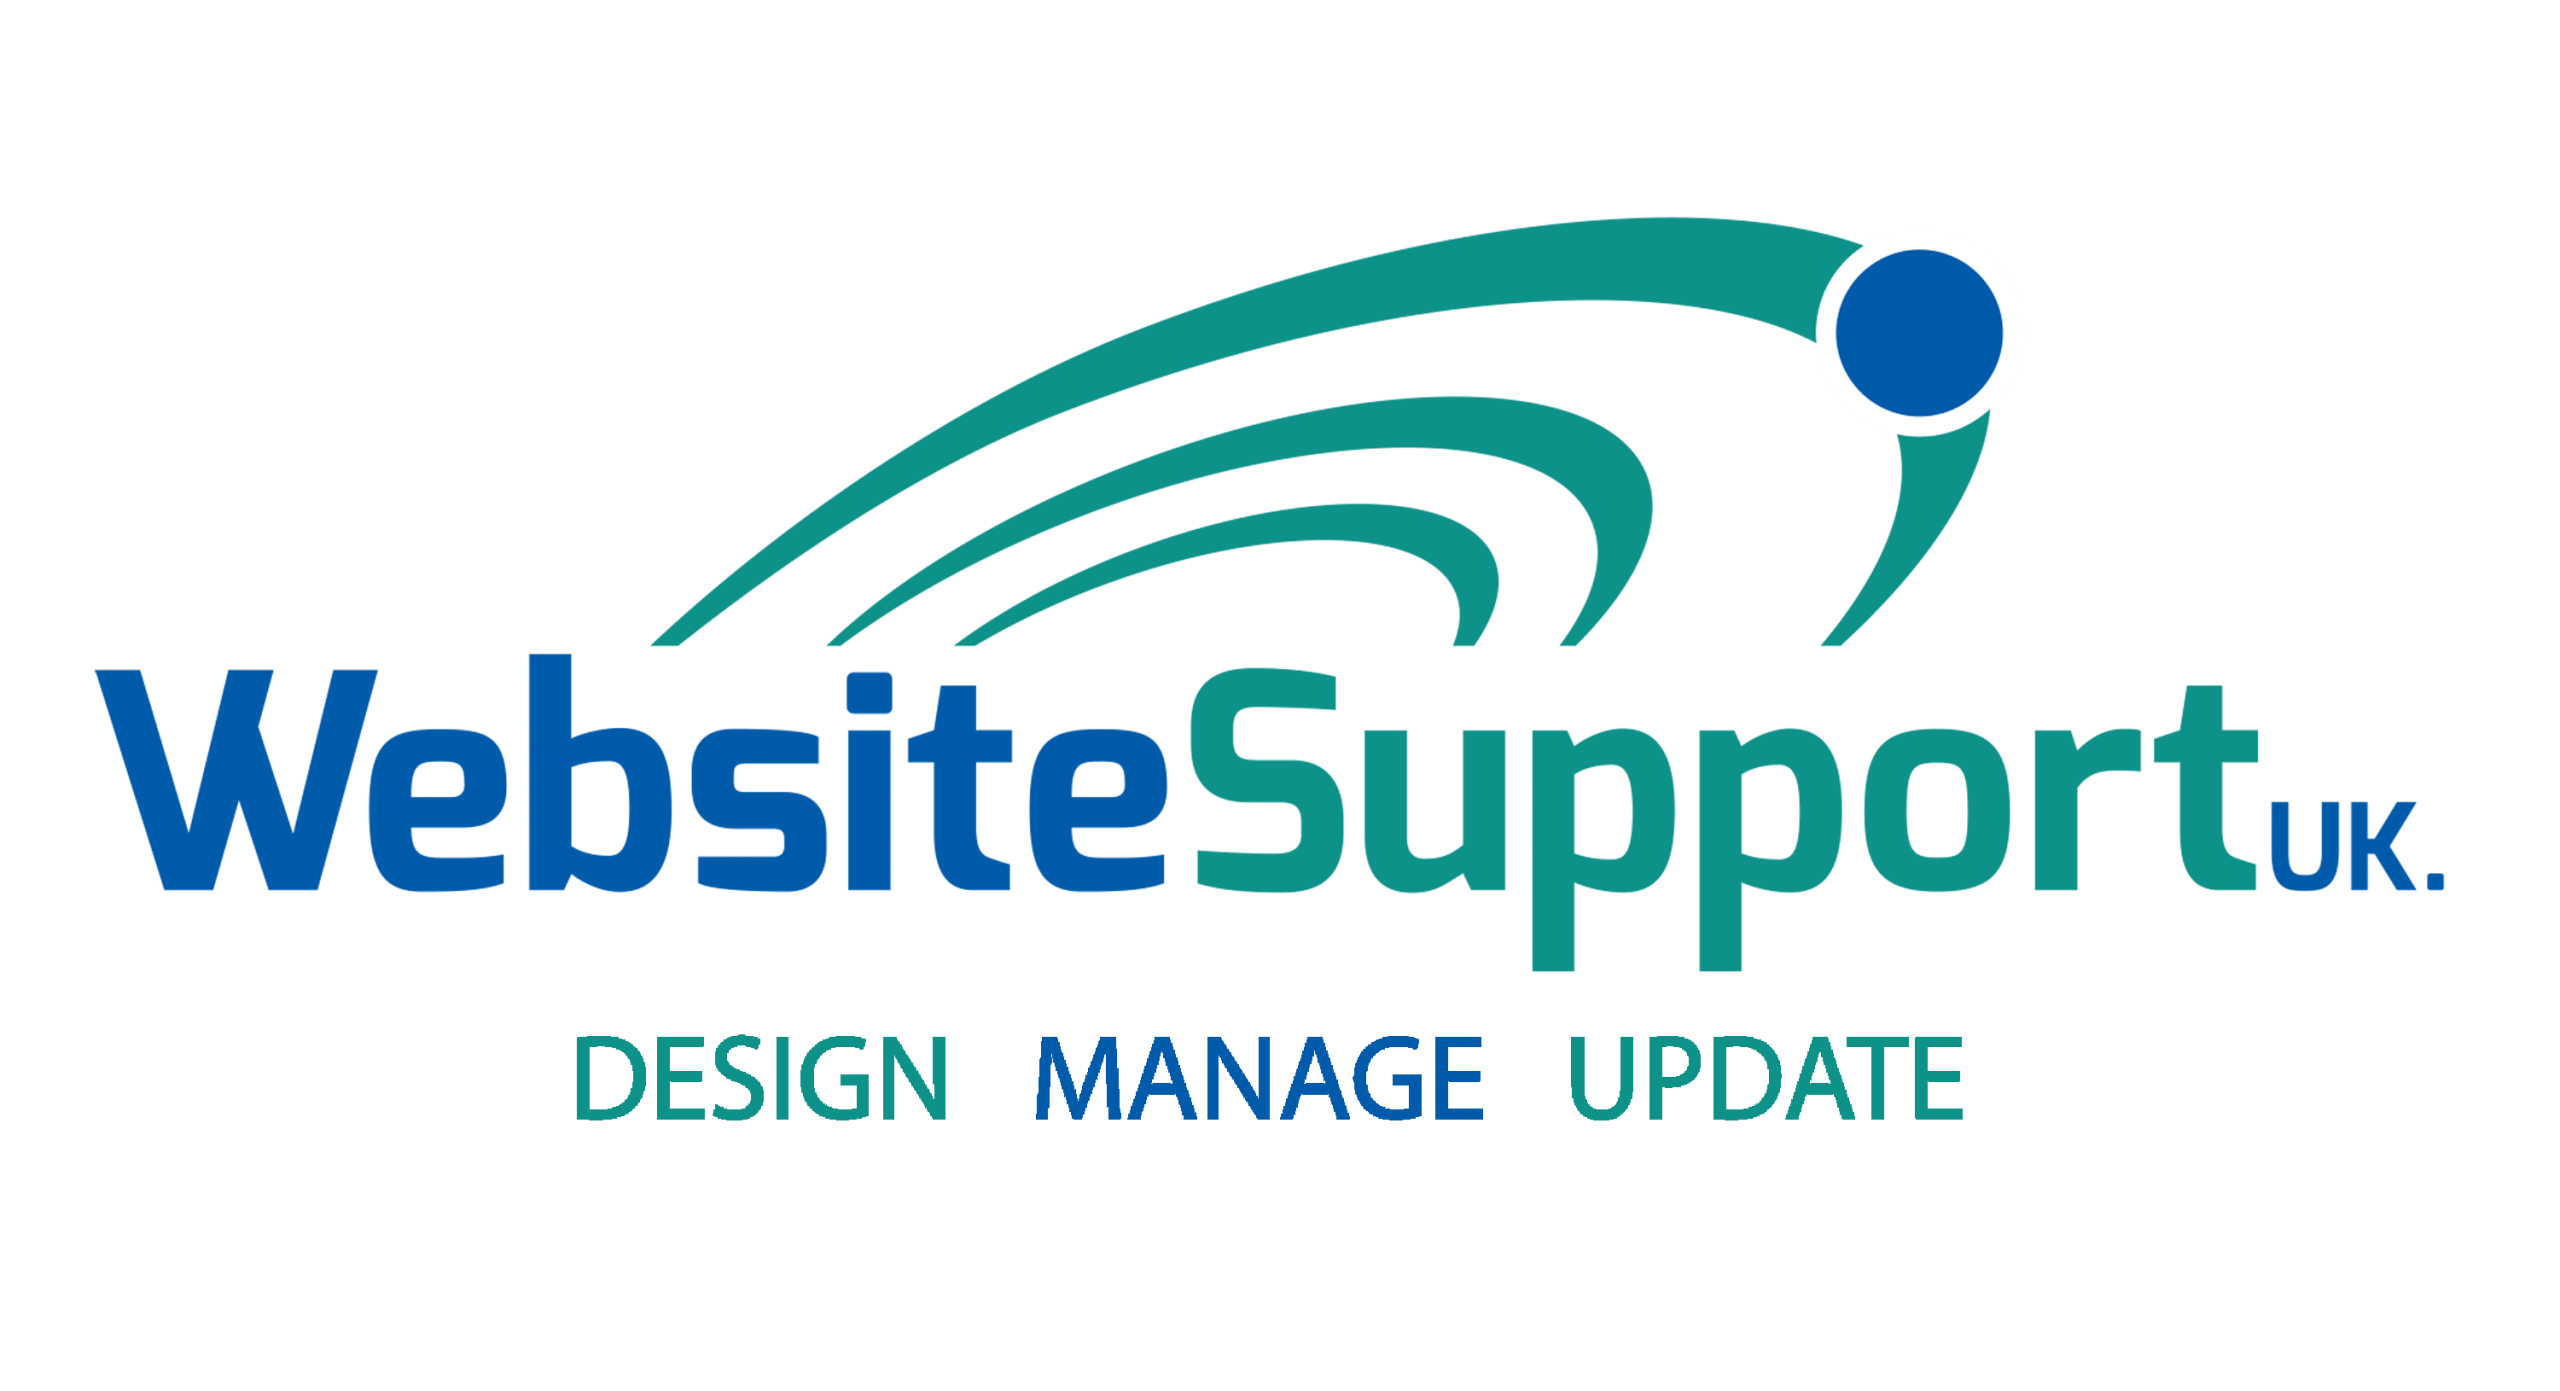 Website Support UK